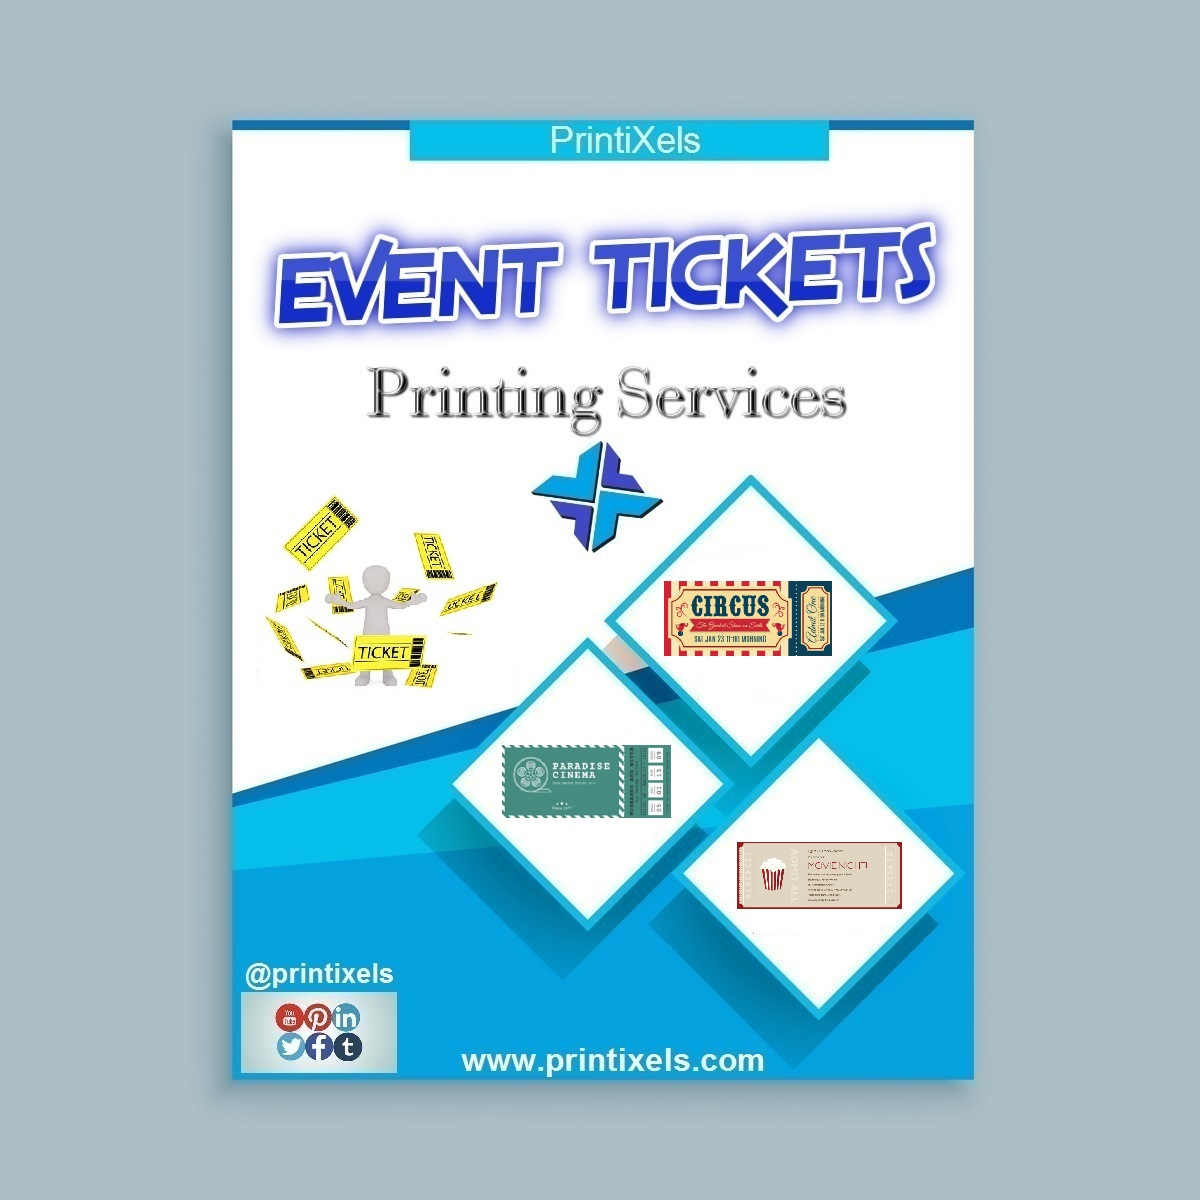 event tickets printing services printixels philippines